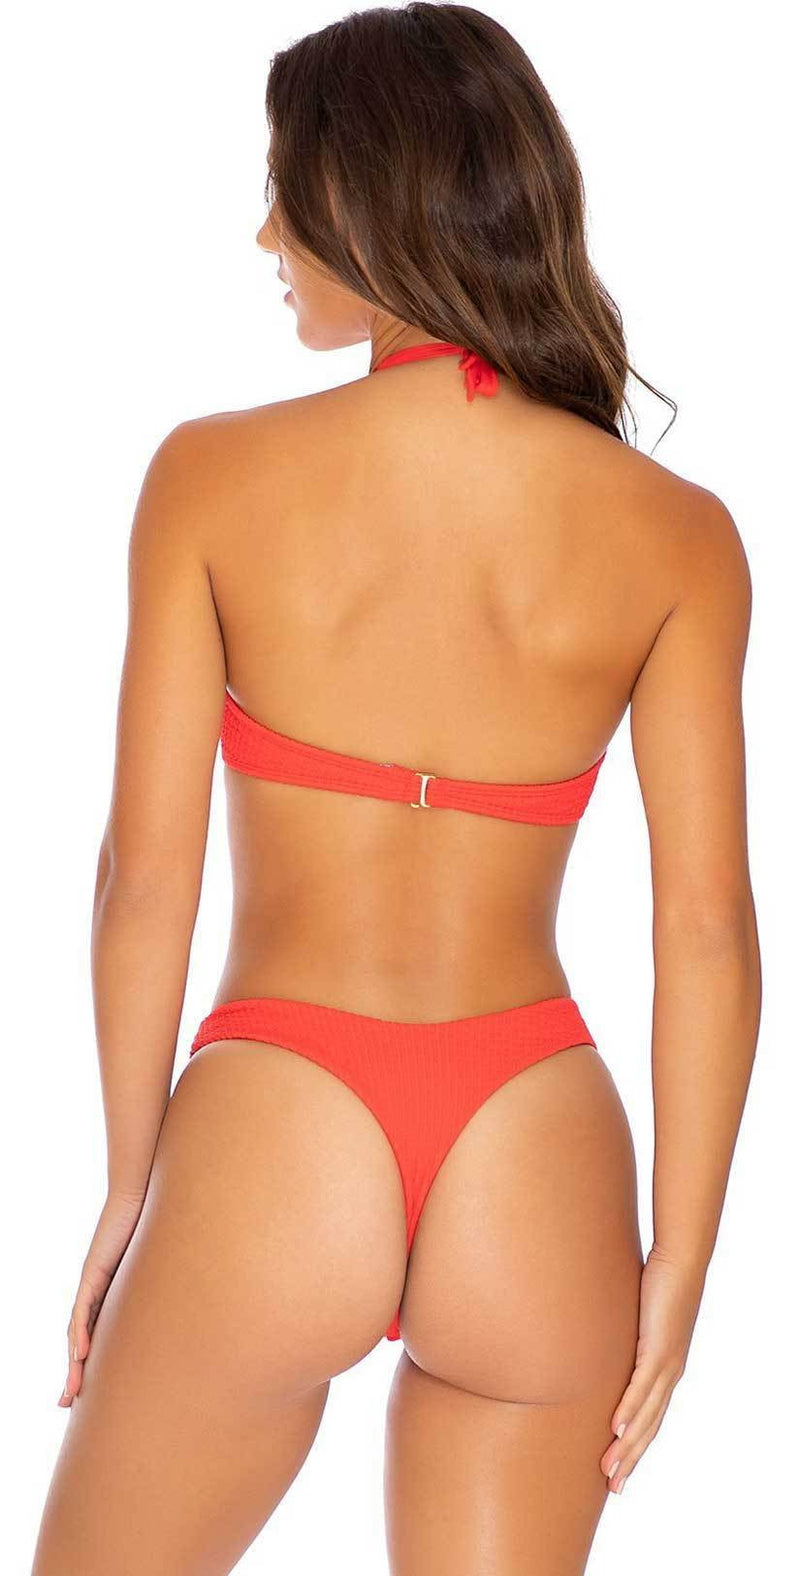 Luli Fama Pura Curiosidad Tab Side High Leg Thong in Chili Pepper: